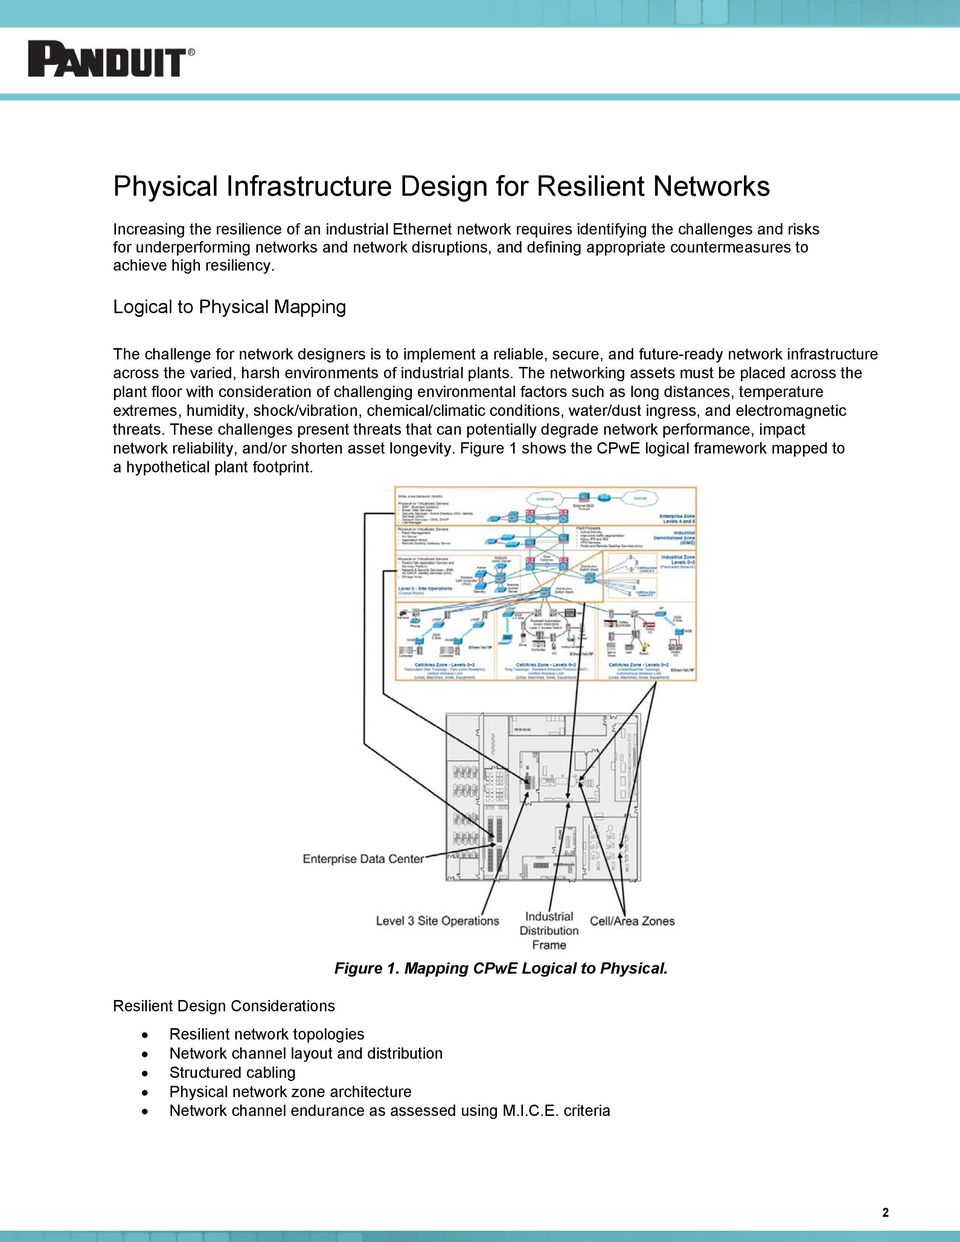 Logical to Physical Mapping The challenge for network designers is to implement a reliable, secure, and future-ready network infrastructure across the varied, harsh environments of industrial plants.